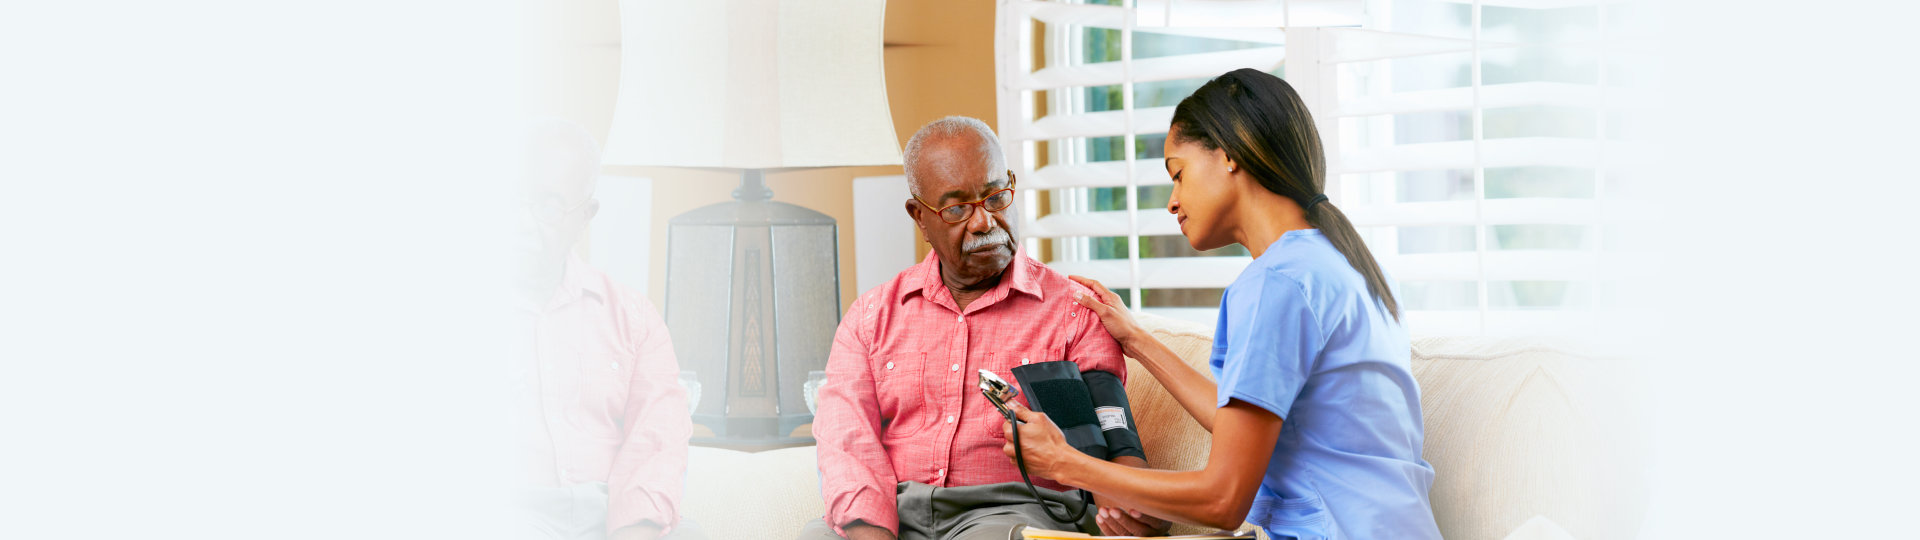 caregiver checking blood pressure of old man